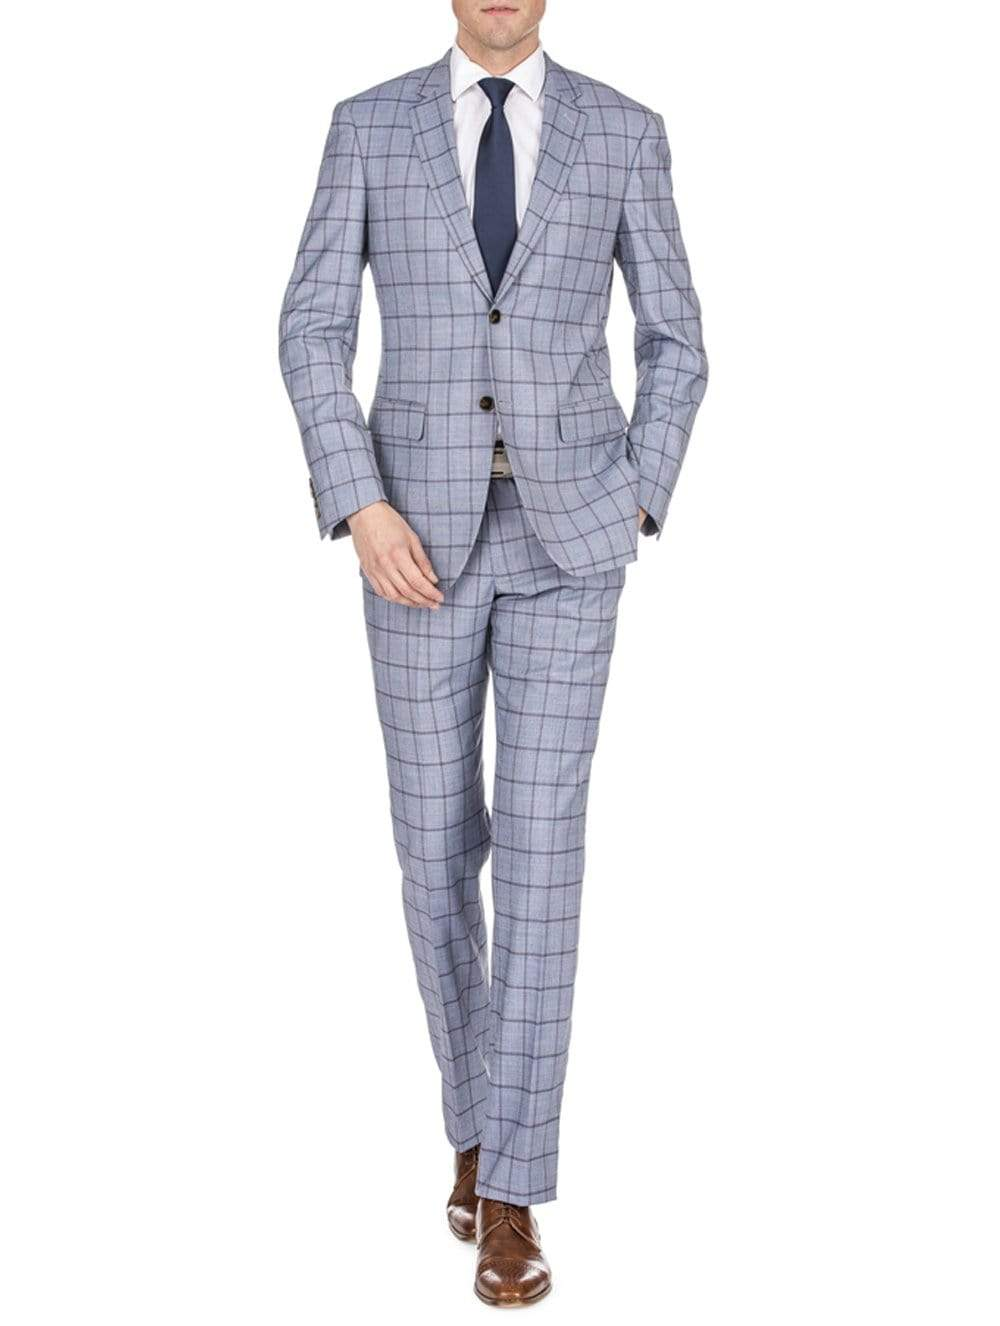 DAILY HAUTE Men's Suits GREY / 36Rx30W Gino Vitale Men's Window Pane Slim Fit Suits